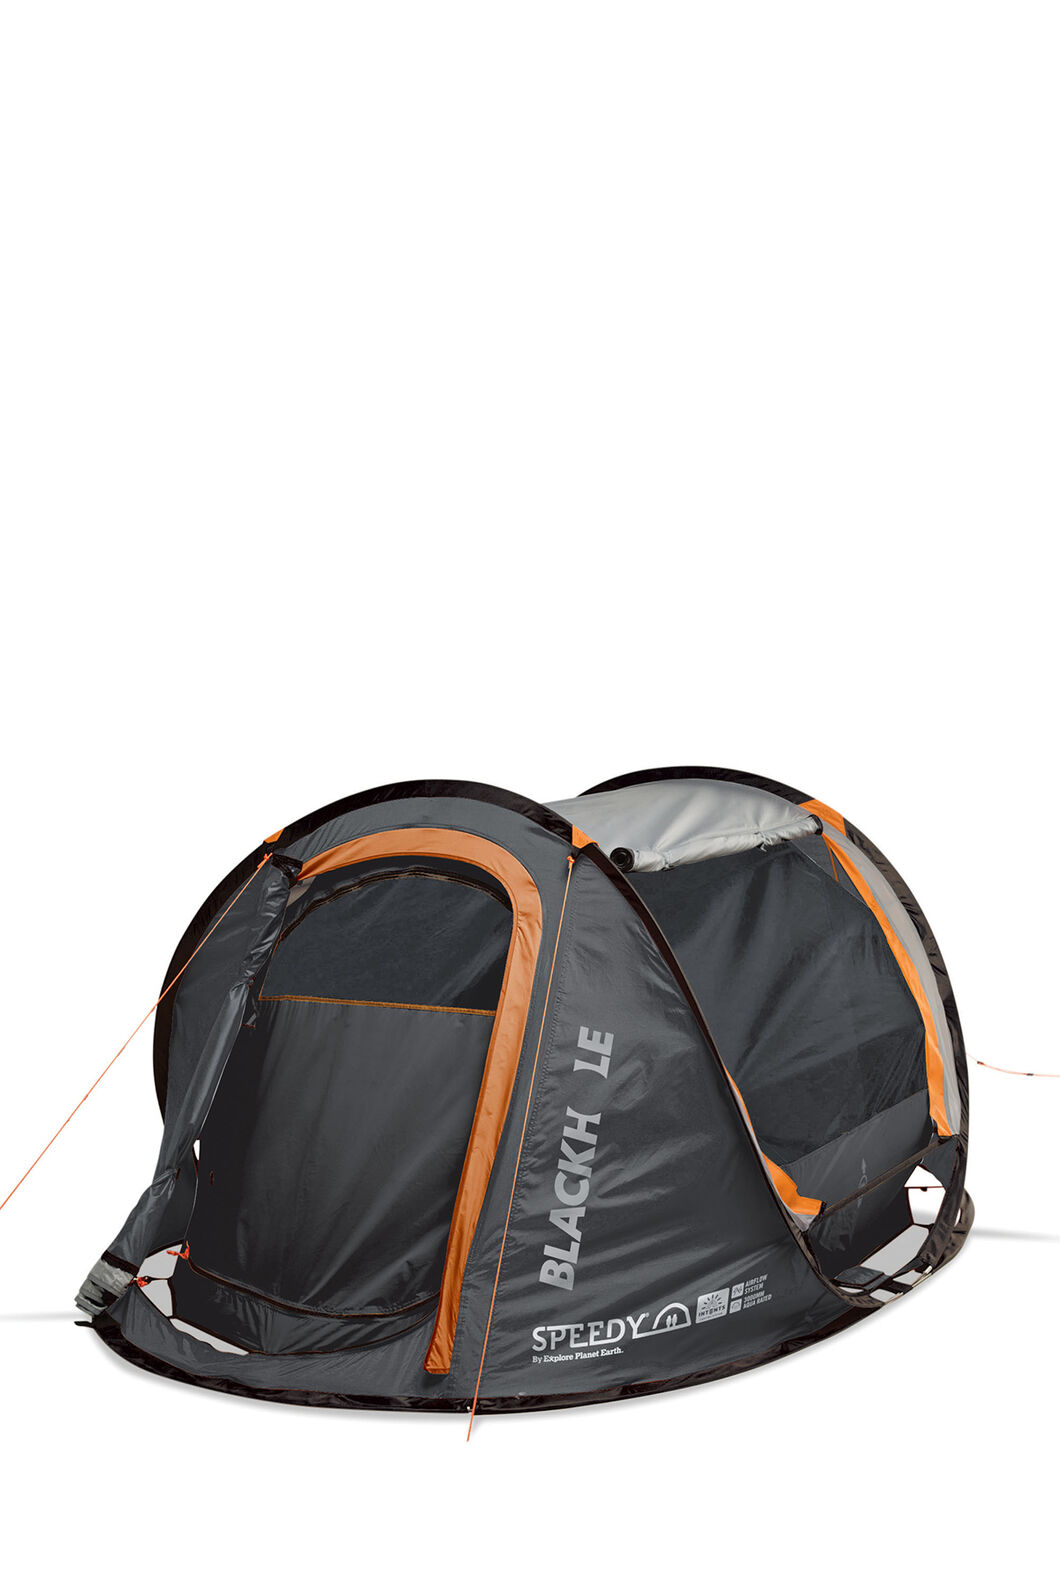 Explore Planet Earth Speedy Black Hole Pop Up Tent — 2 Person, None, hi-res